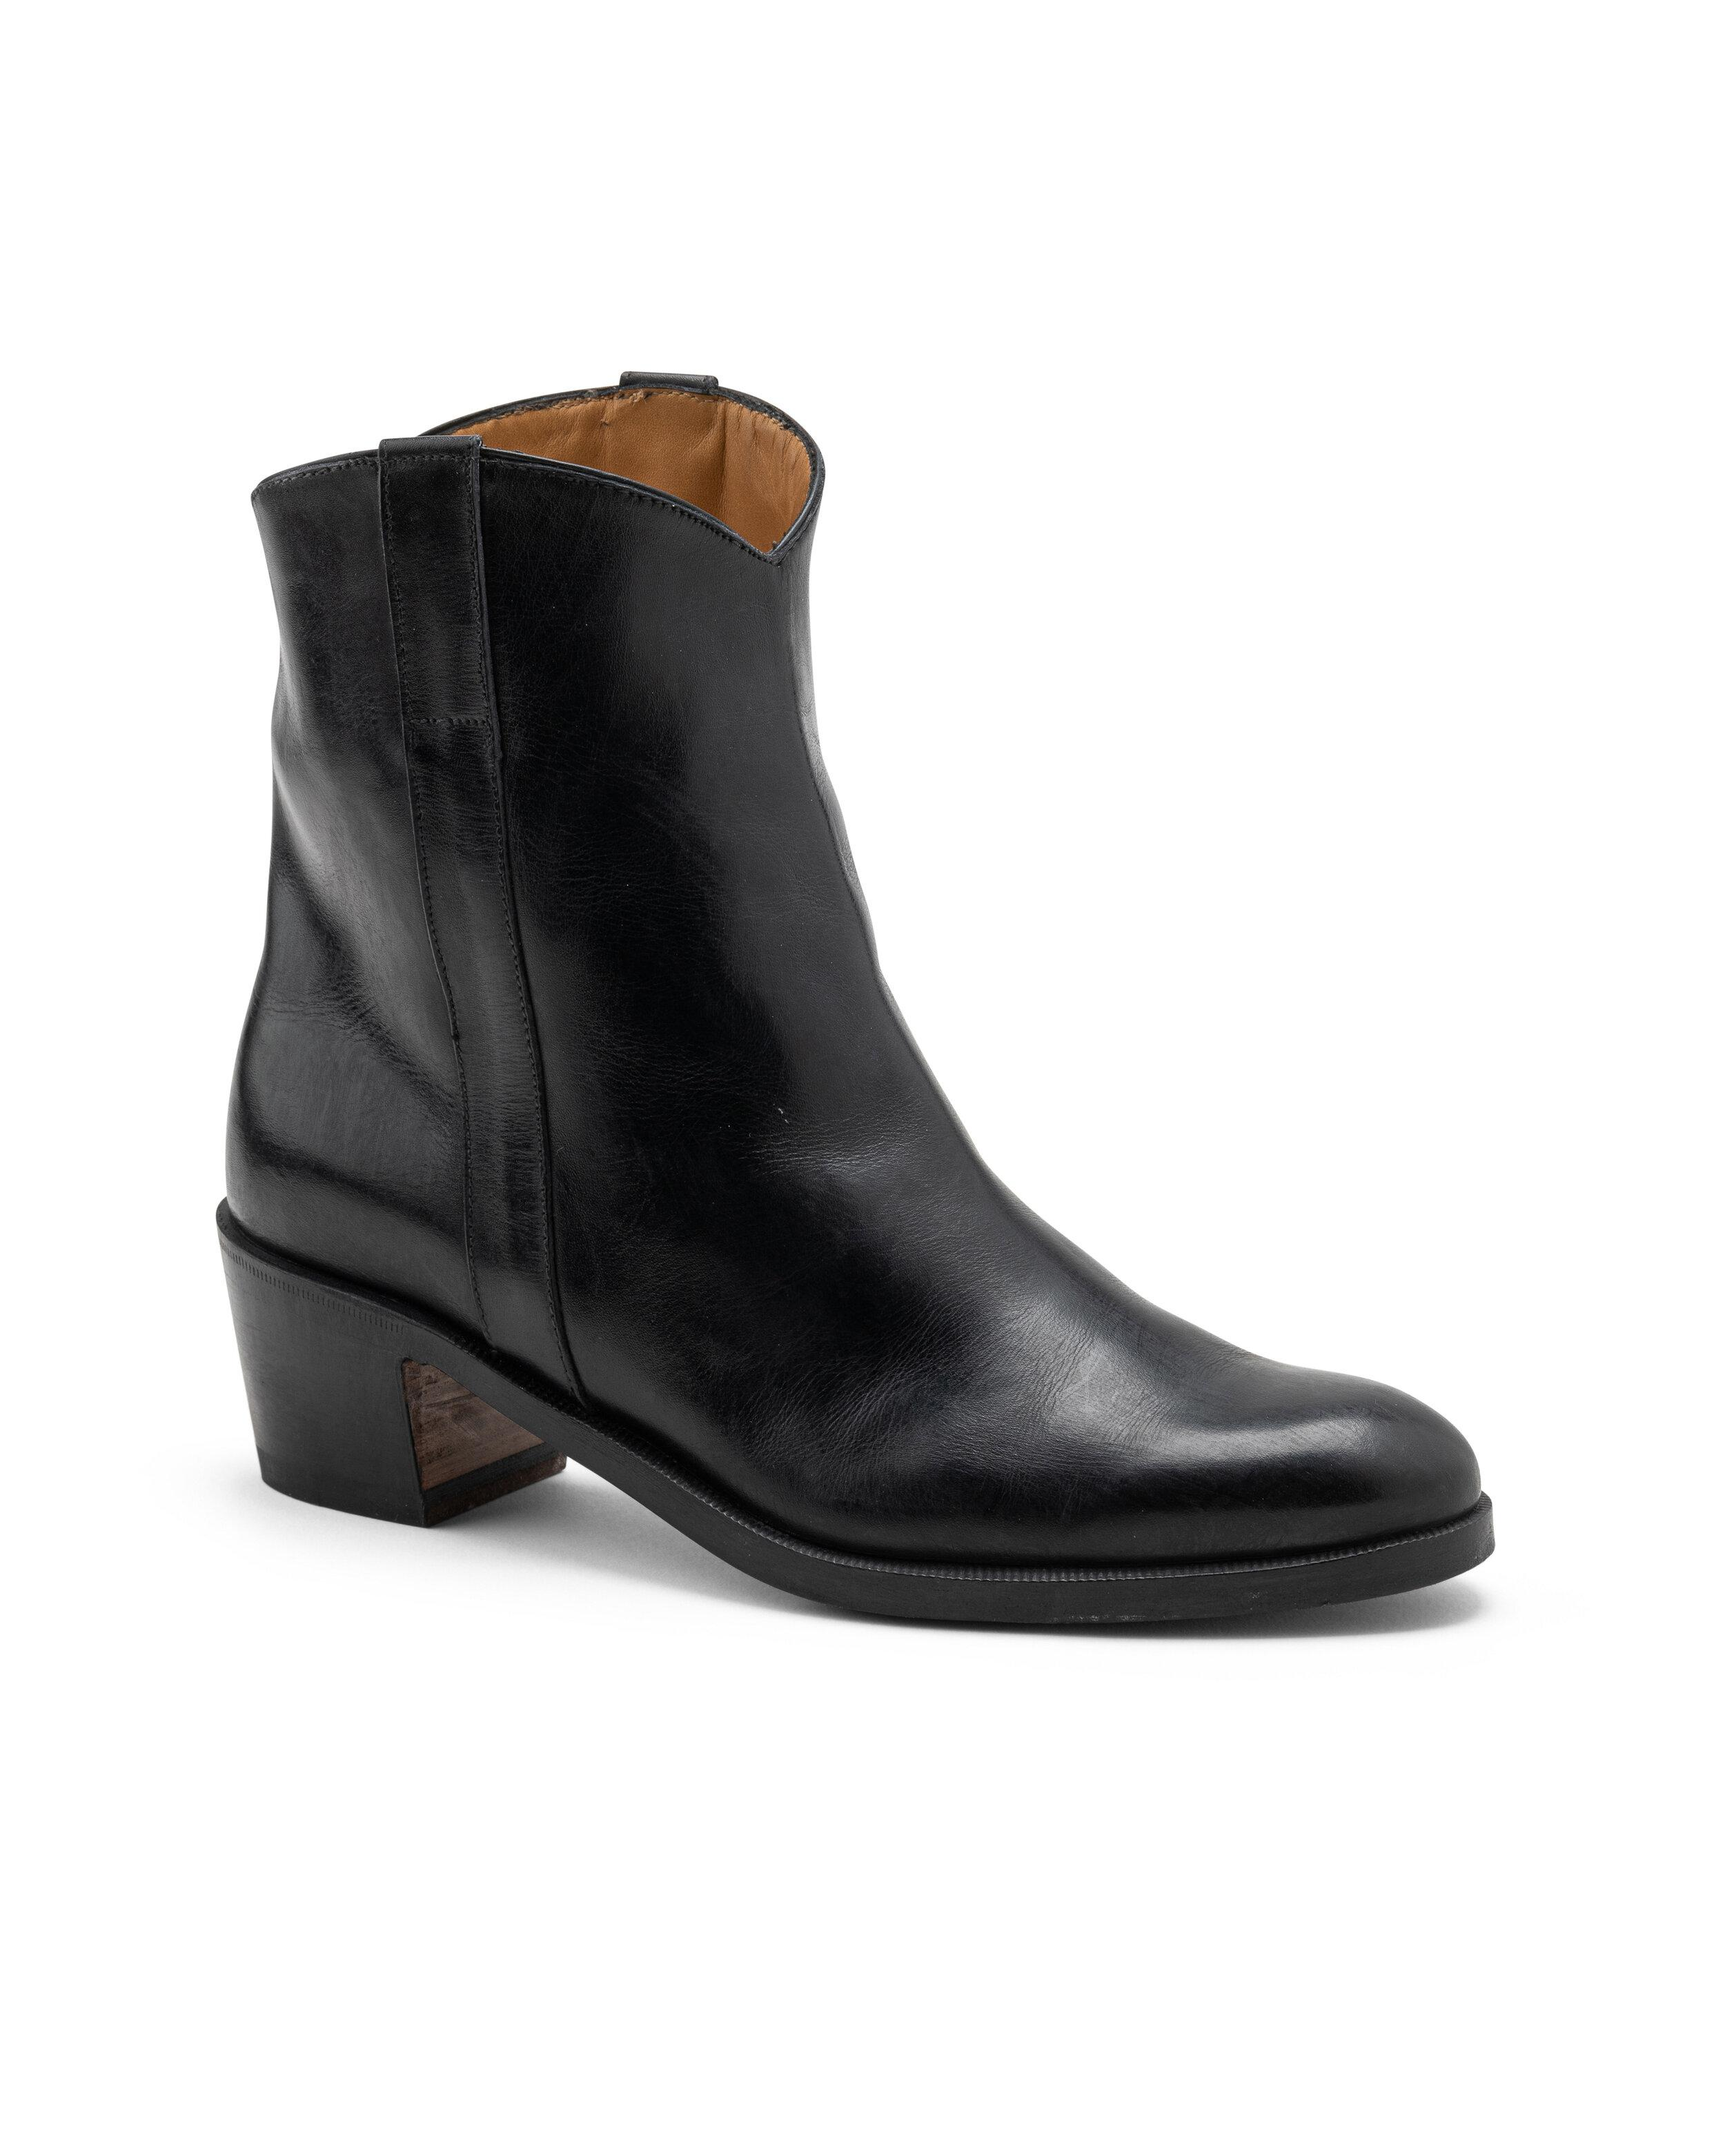 ODPEssentials Classic Texano Boot - Black Leather